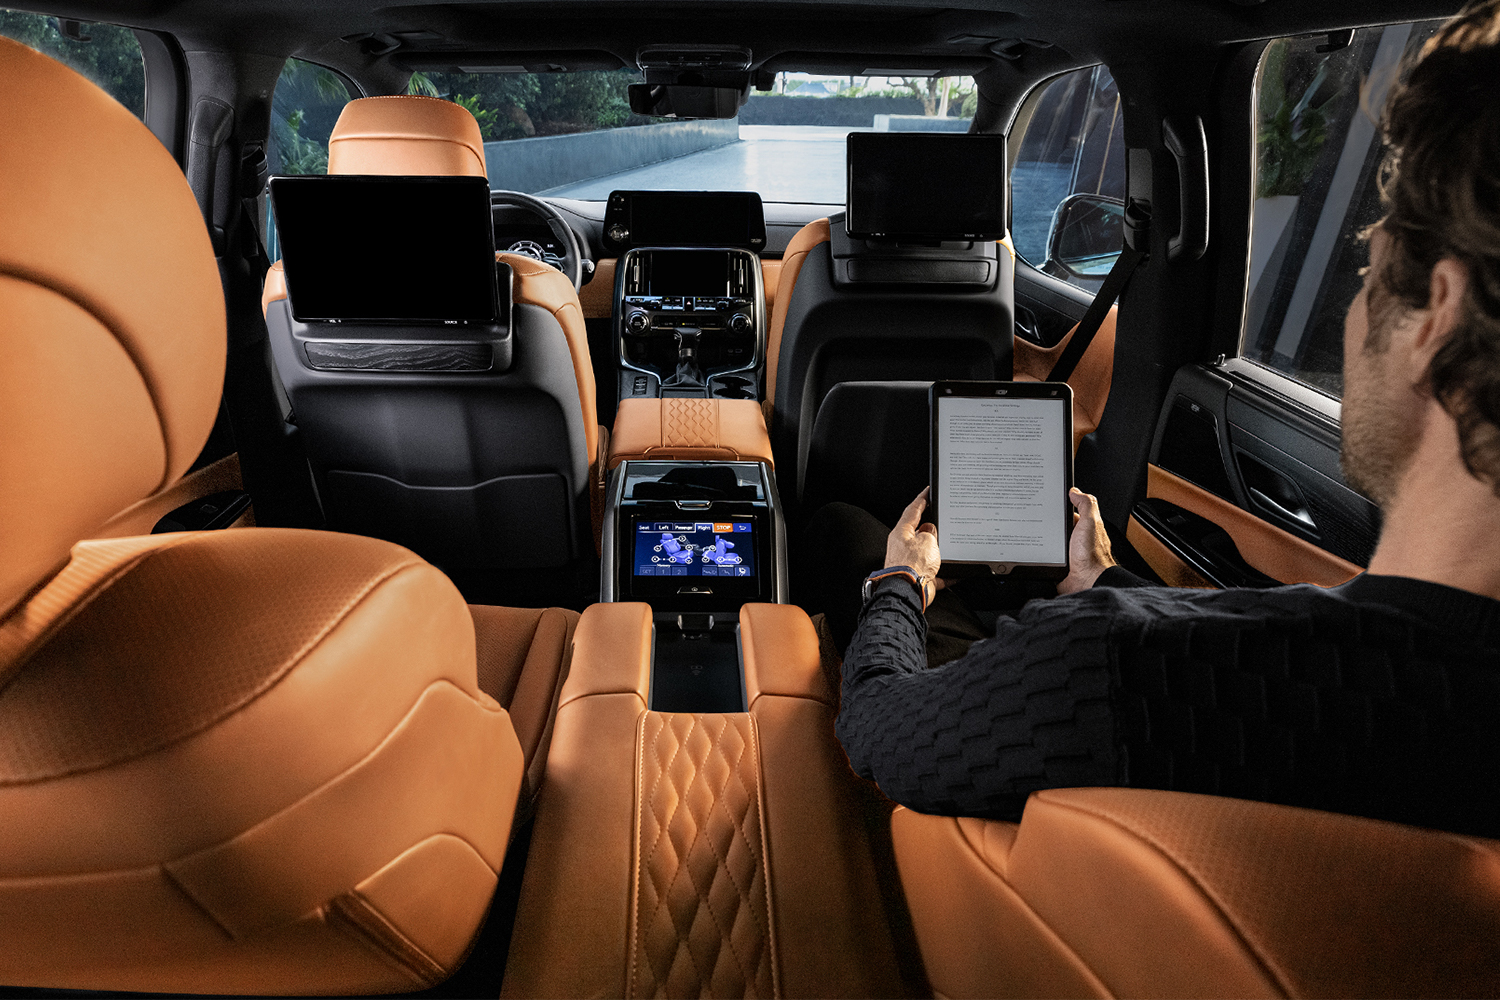 A man sitting inside the Ultra Luxury trim 2022 Lexus LX 600 SUV with two rear VIP seats that offer better legroom and air conditioning